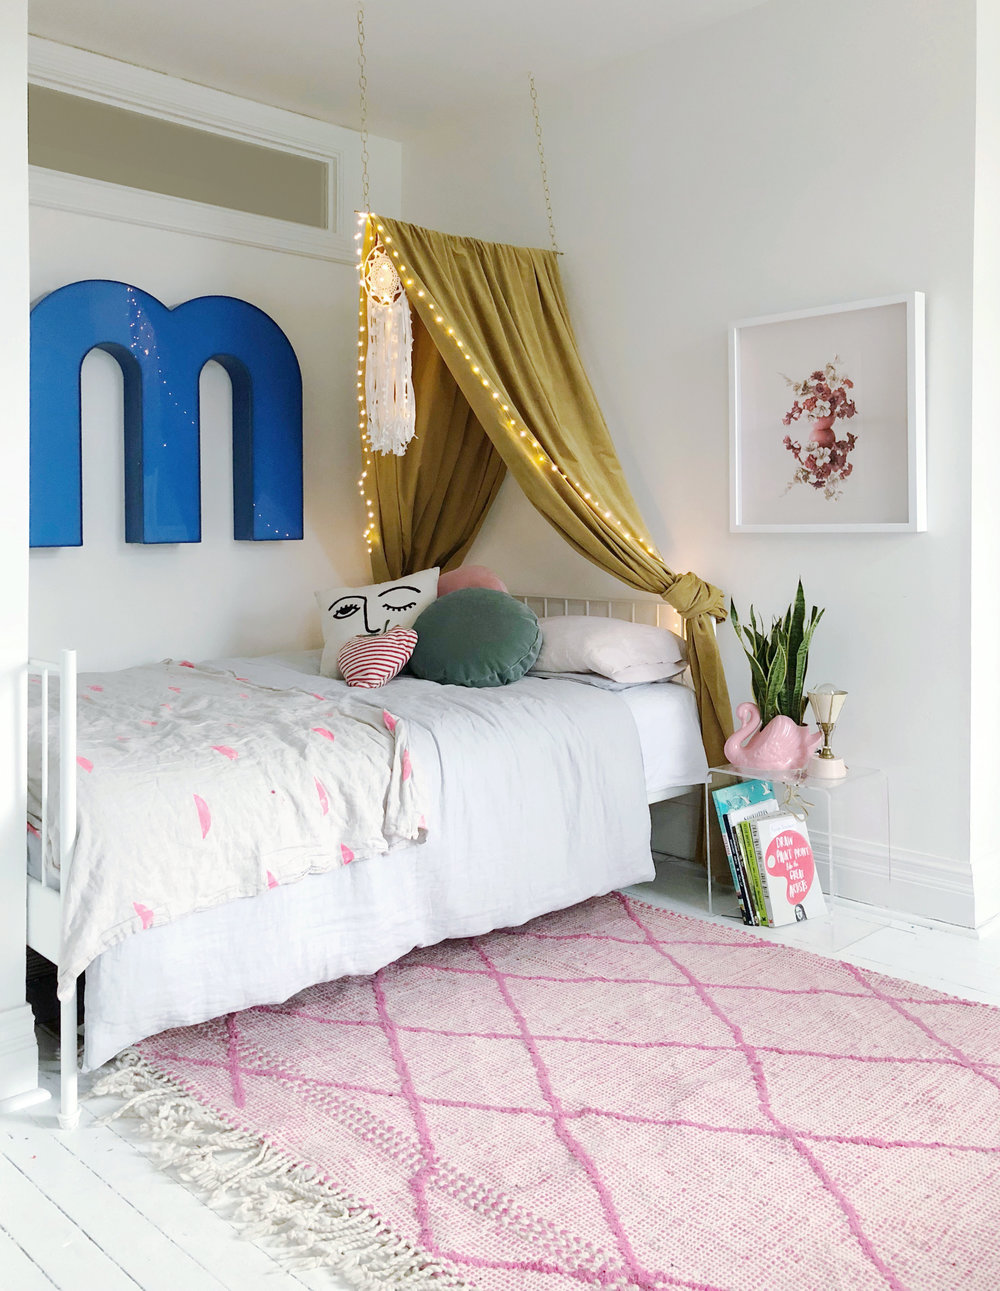 Molly's Bedroom_MellahRug.jpg